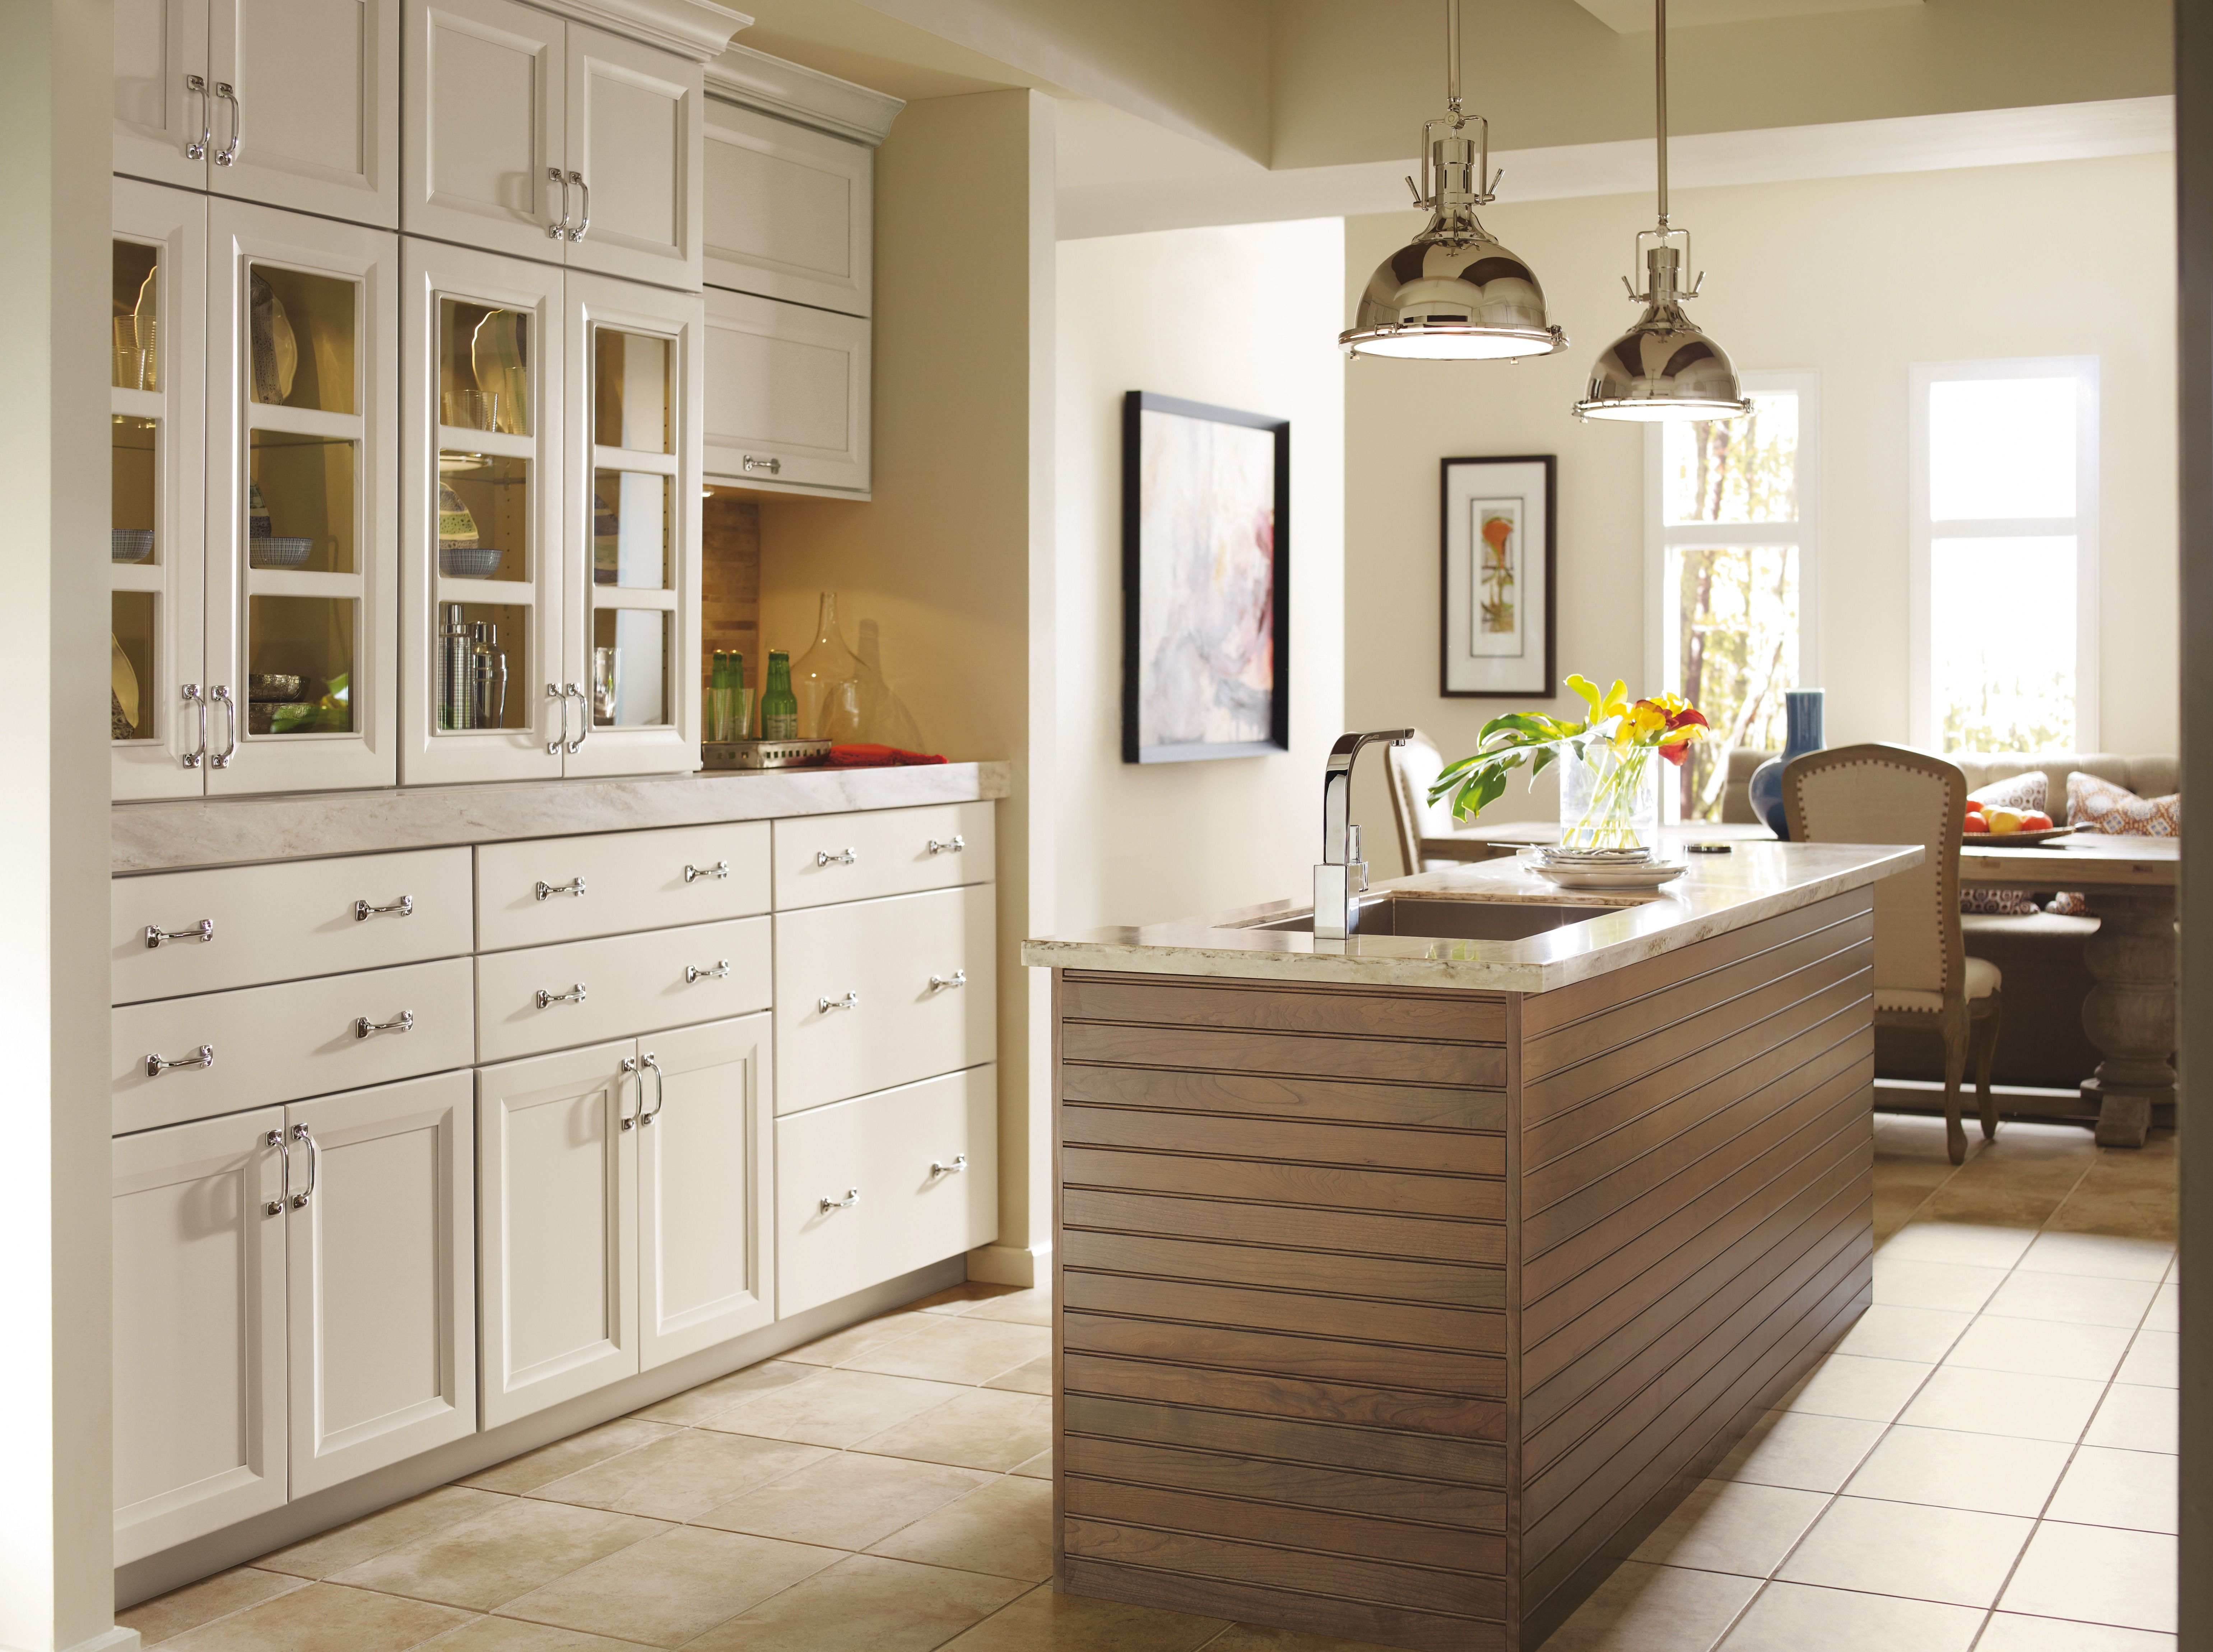 Dynasty Cabinetry In Maple Magnolia A Subtly Gray Toned White Along With Cherry Riverbed On The Island Omega Cabinetry Kitchen Cabinet Design Maple Cabinets